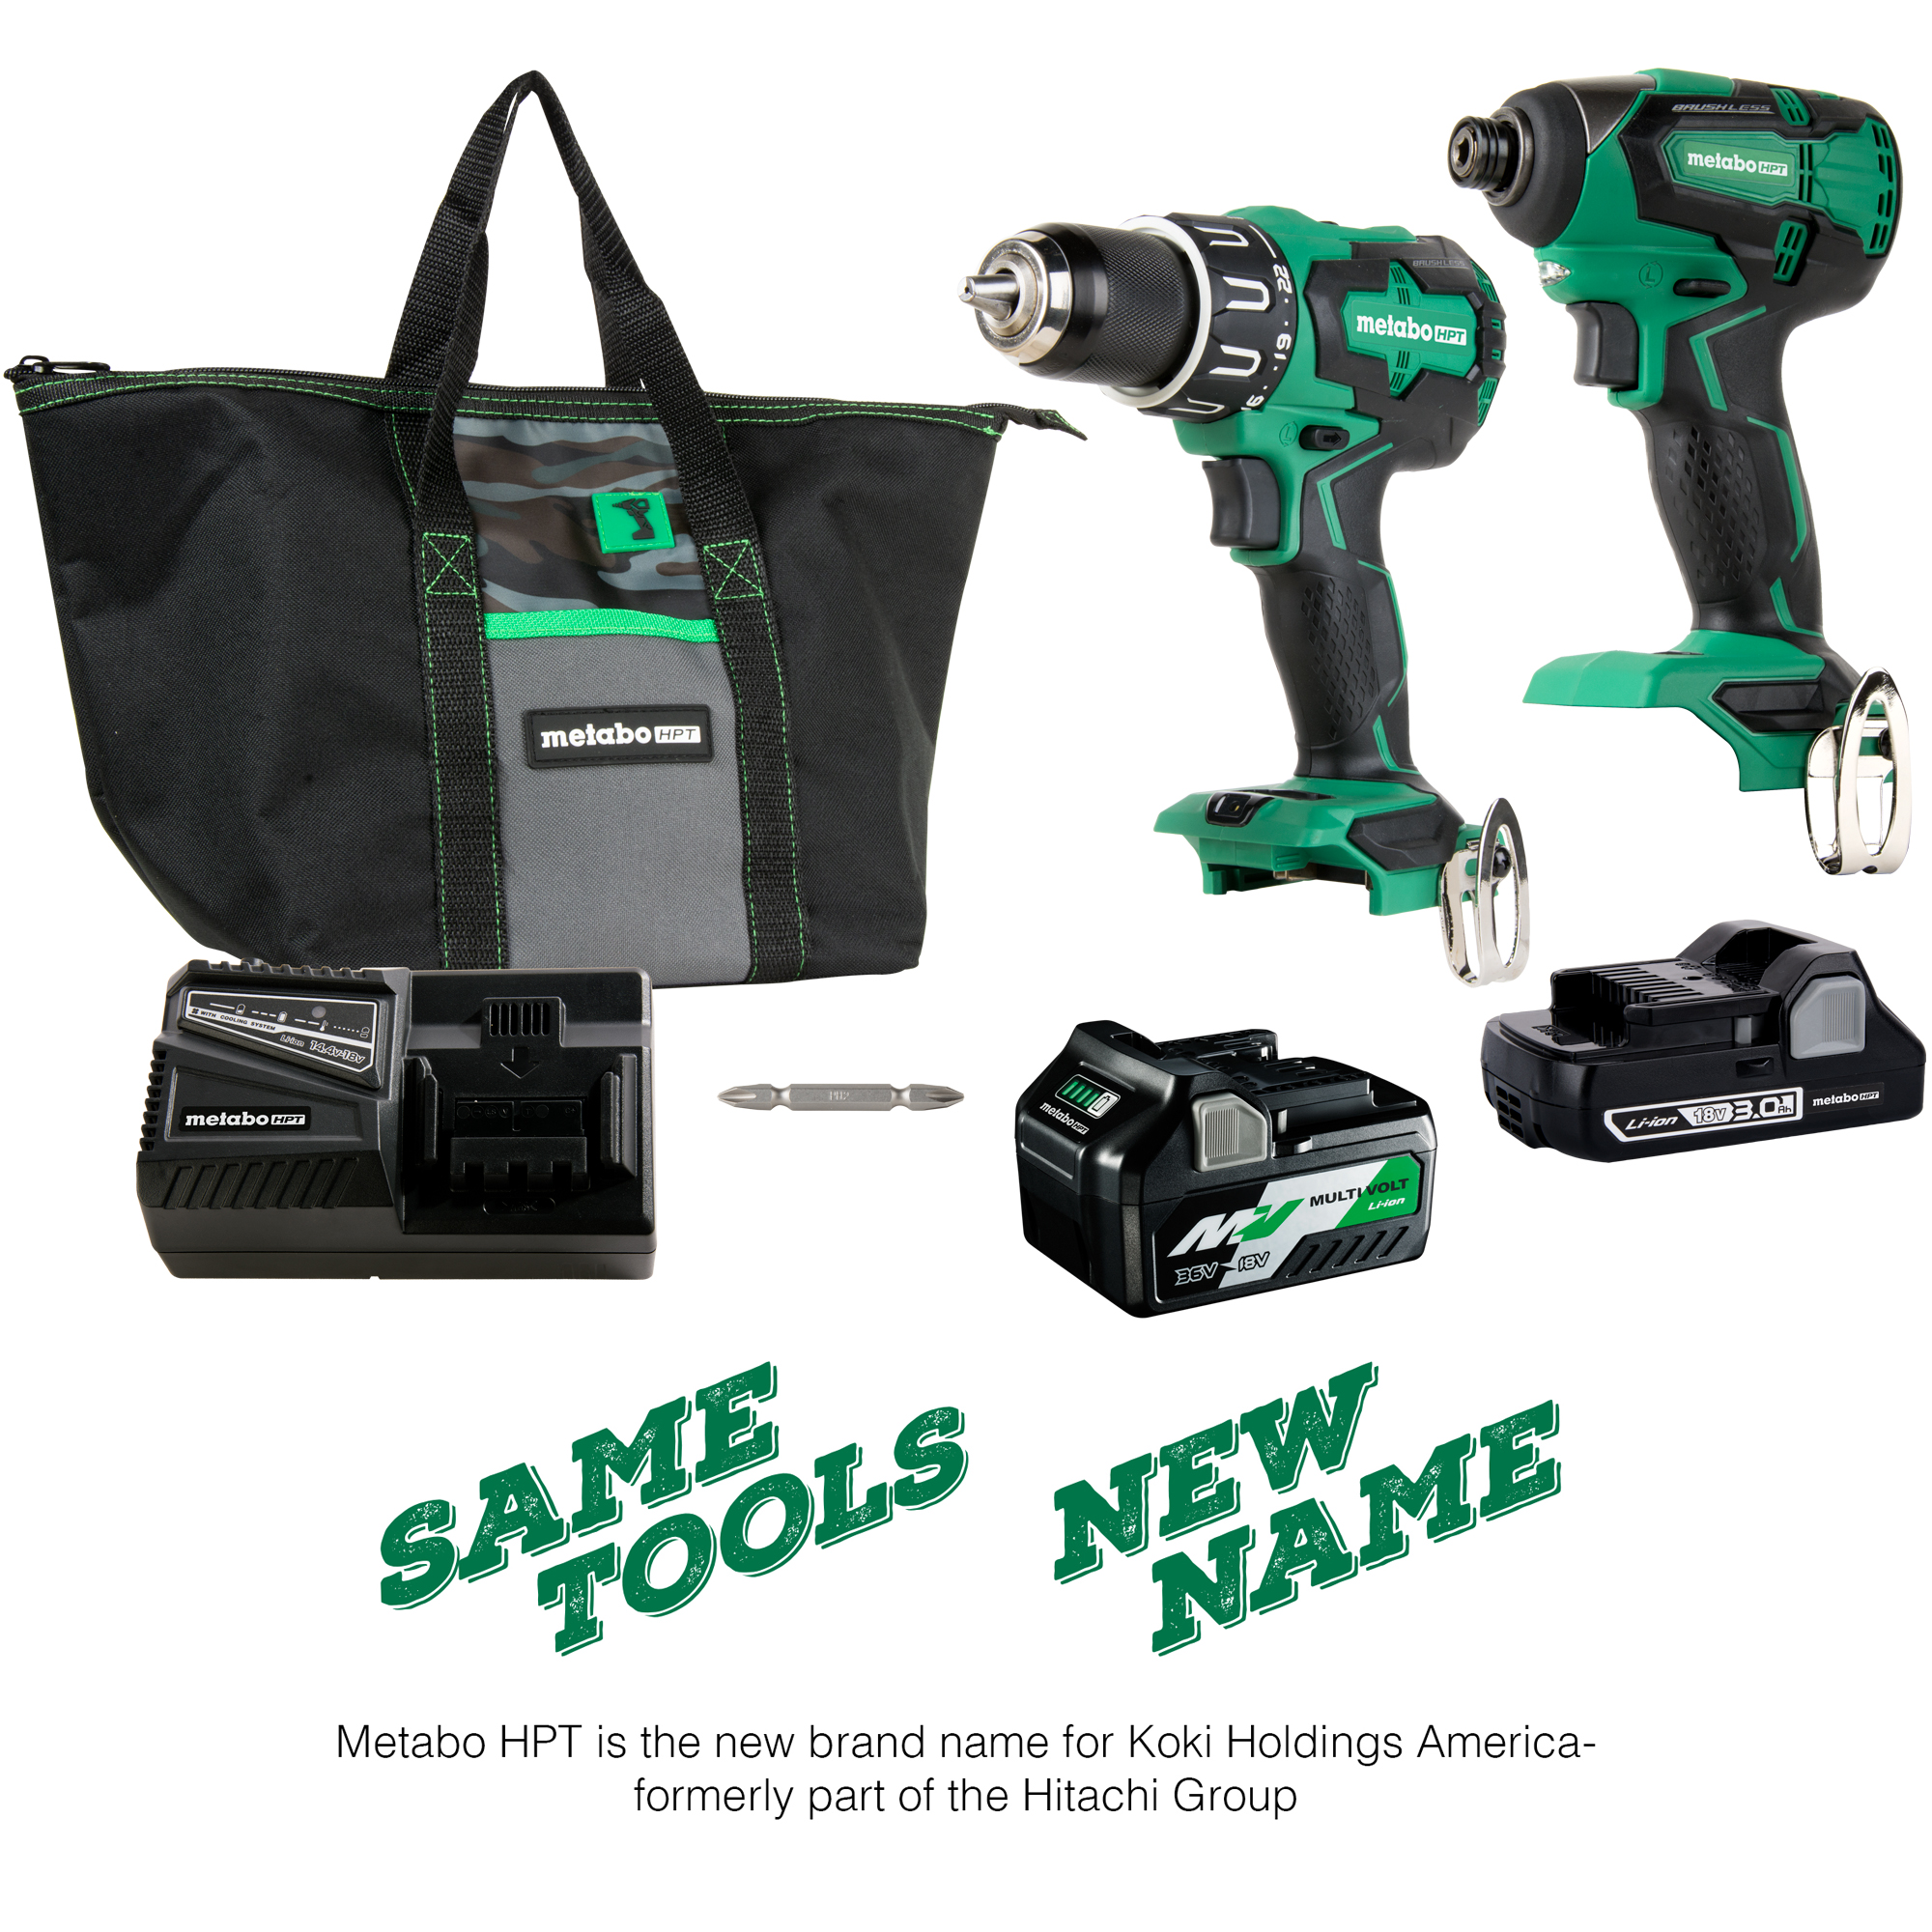 Metabo HPT 18V Lithium Ion Brushless Hammer Drill & Impact Driver Combo Kit